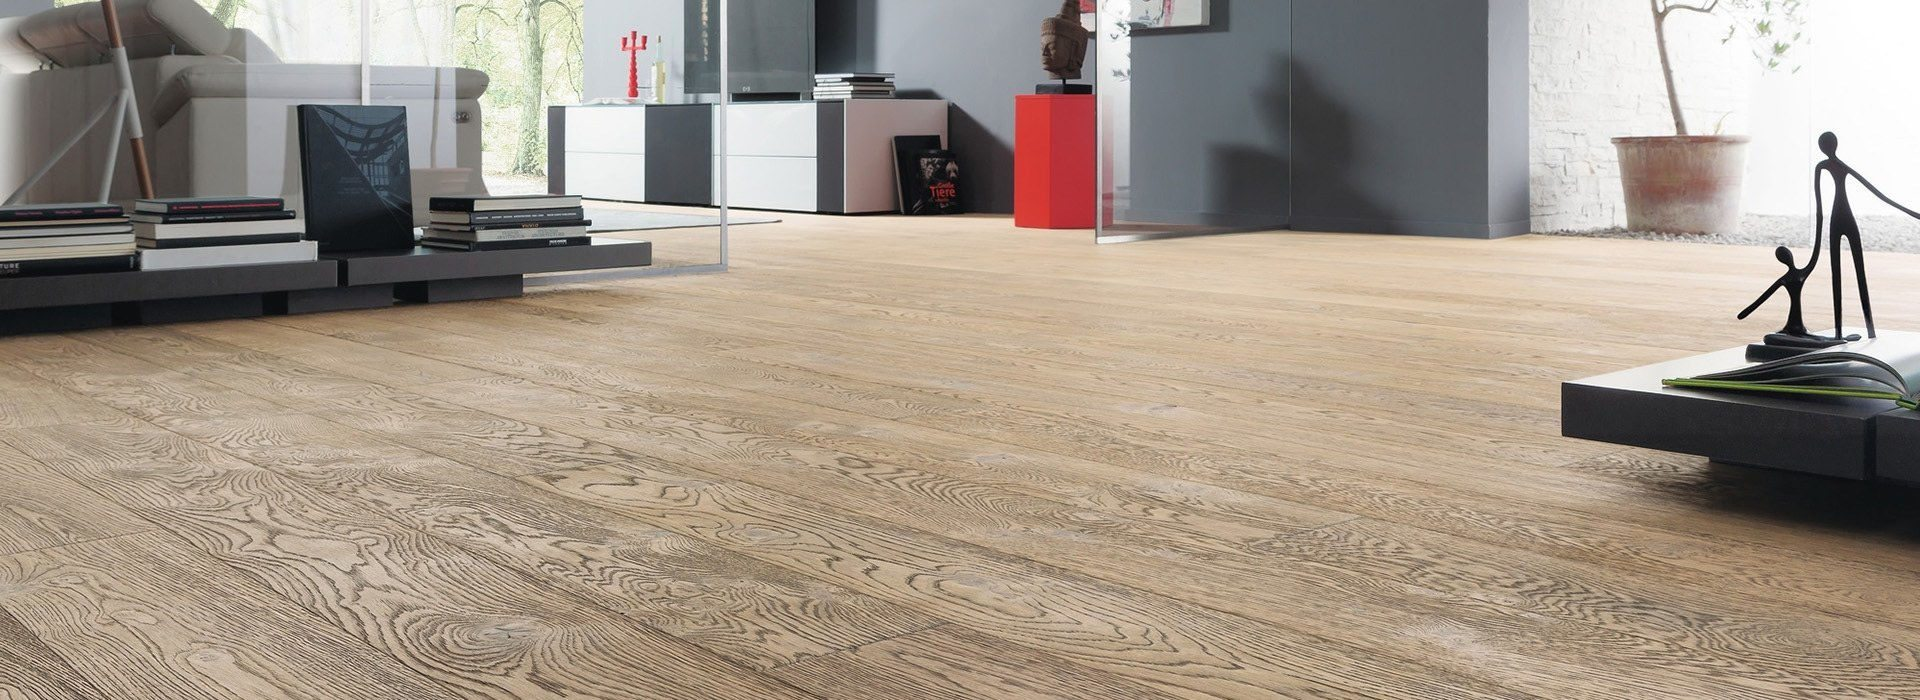 4 mistakes associated withtreatment of timber flooring for residence